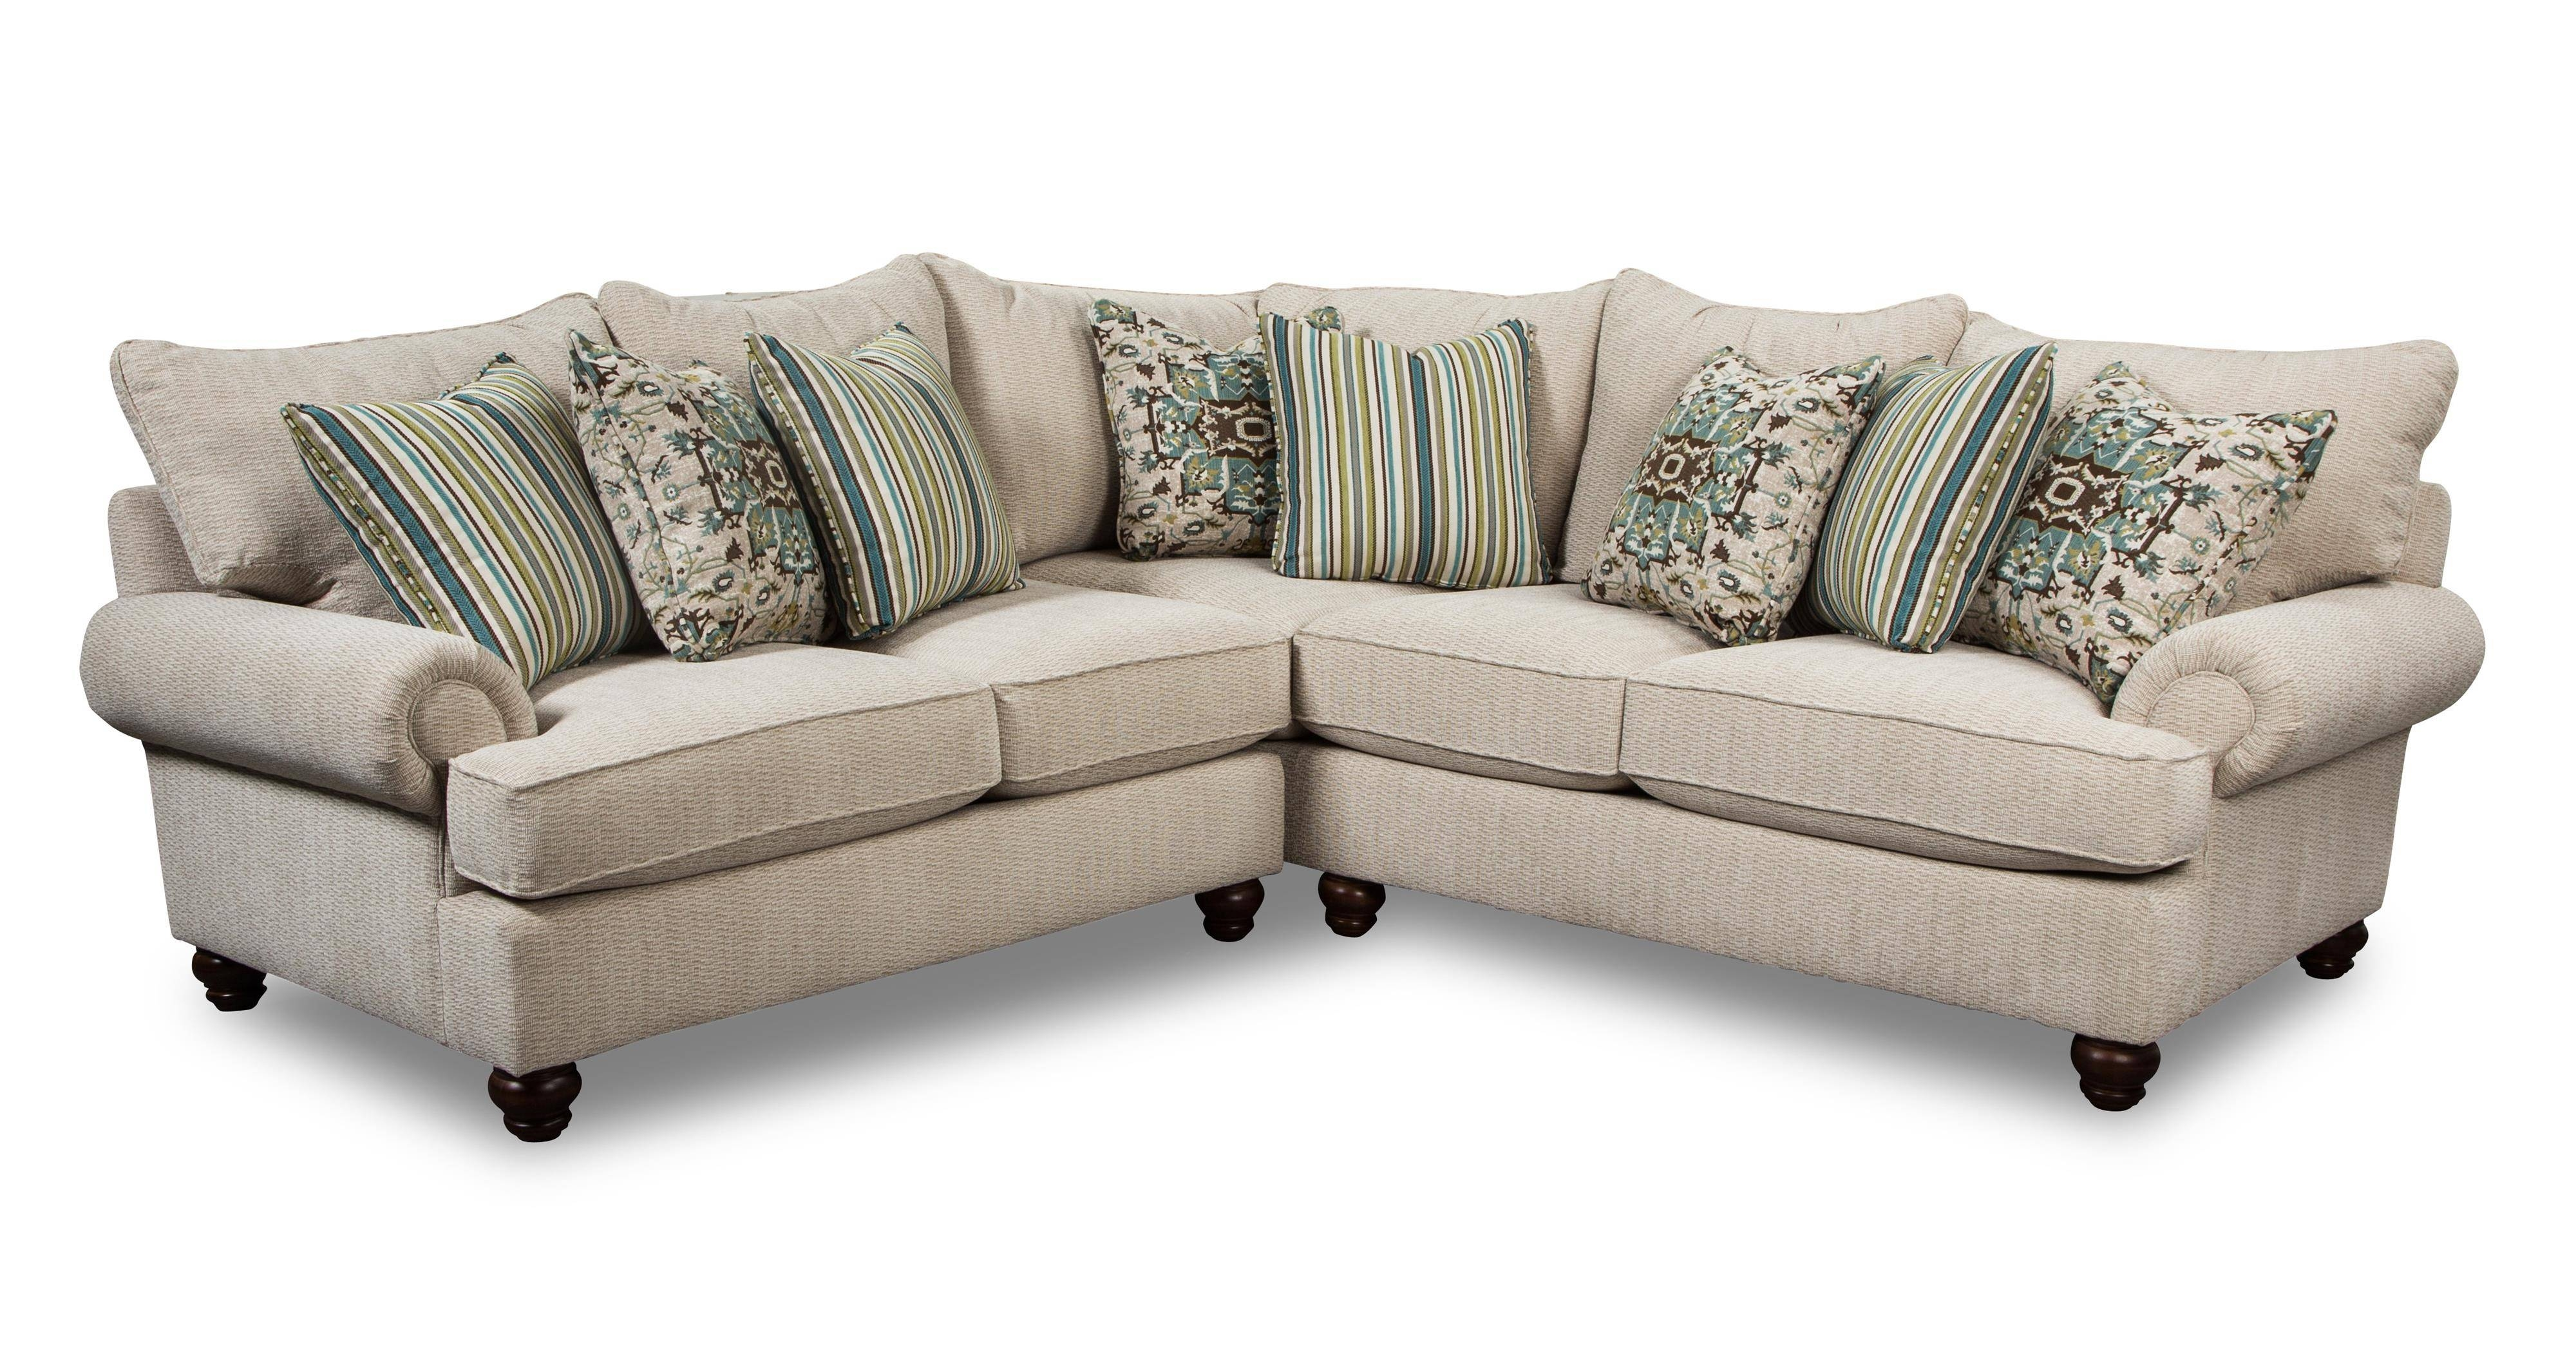 Two Piece Sectional Sofa With Turned Wood Feetcraftmaster in 10 Piece Sectional Sofa (Image 29 of 30)